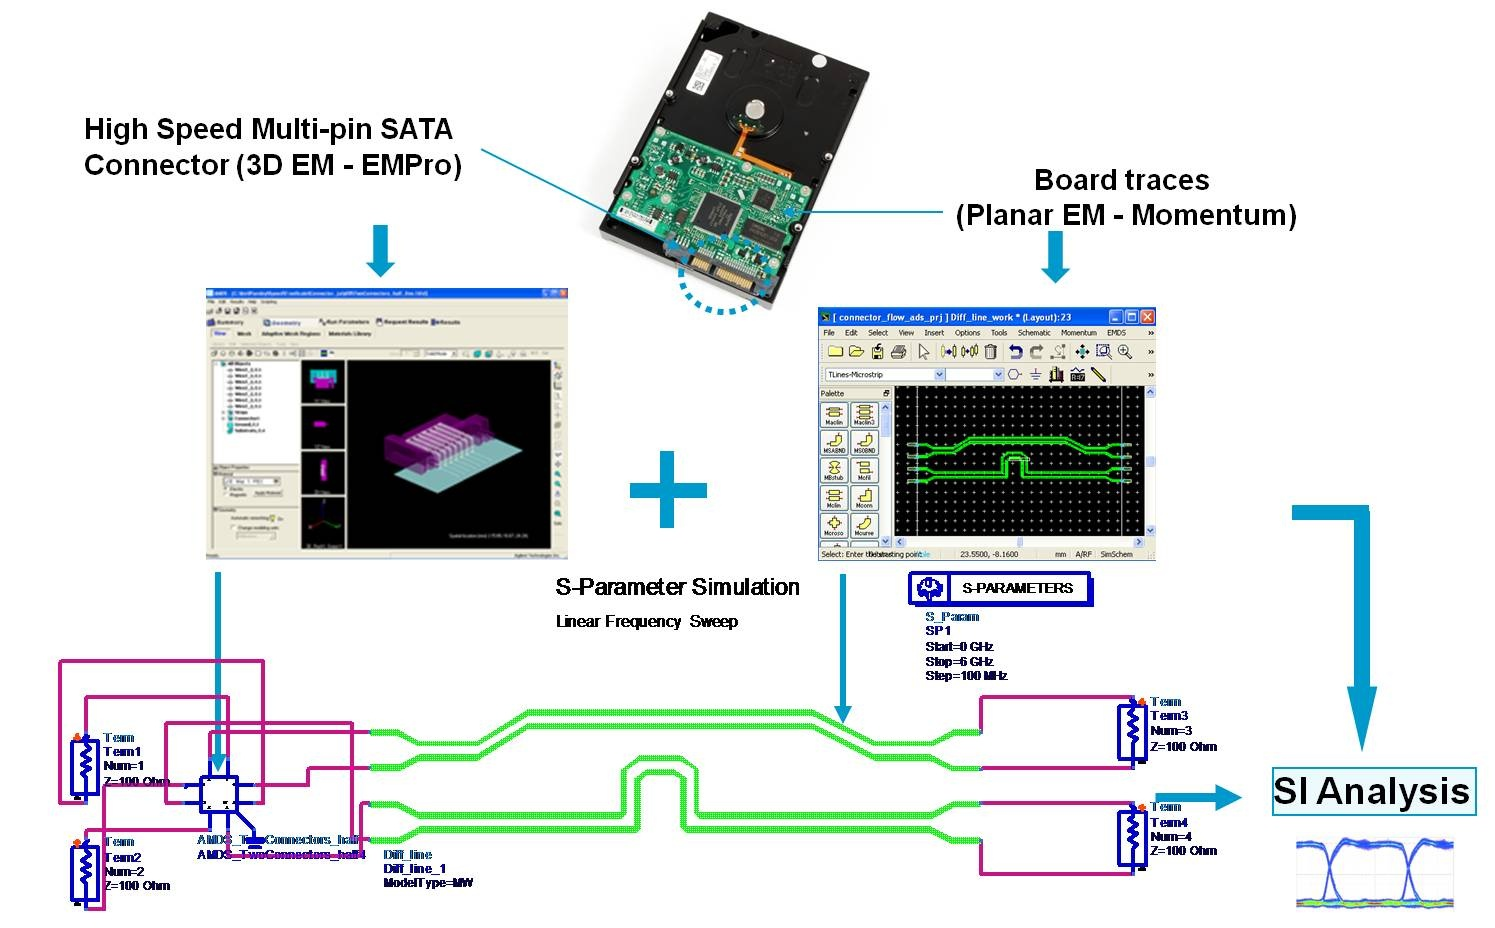 Confluence Mobile Keysight Knowledge Center Sata Power Schematic Figure 5 3d And Planer Em Results Are Combined In An Ads Signal Integrity Analysis